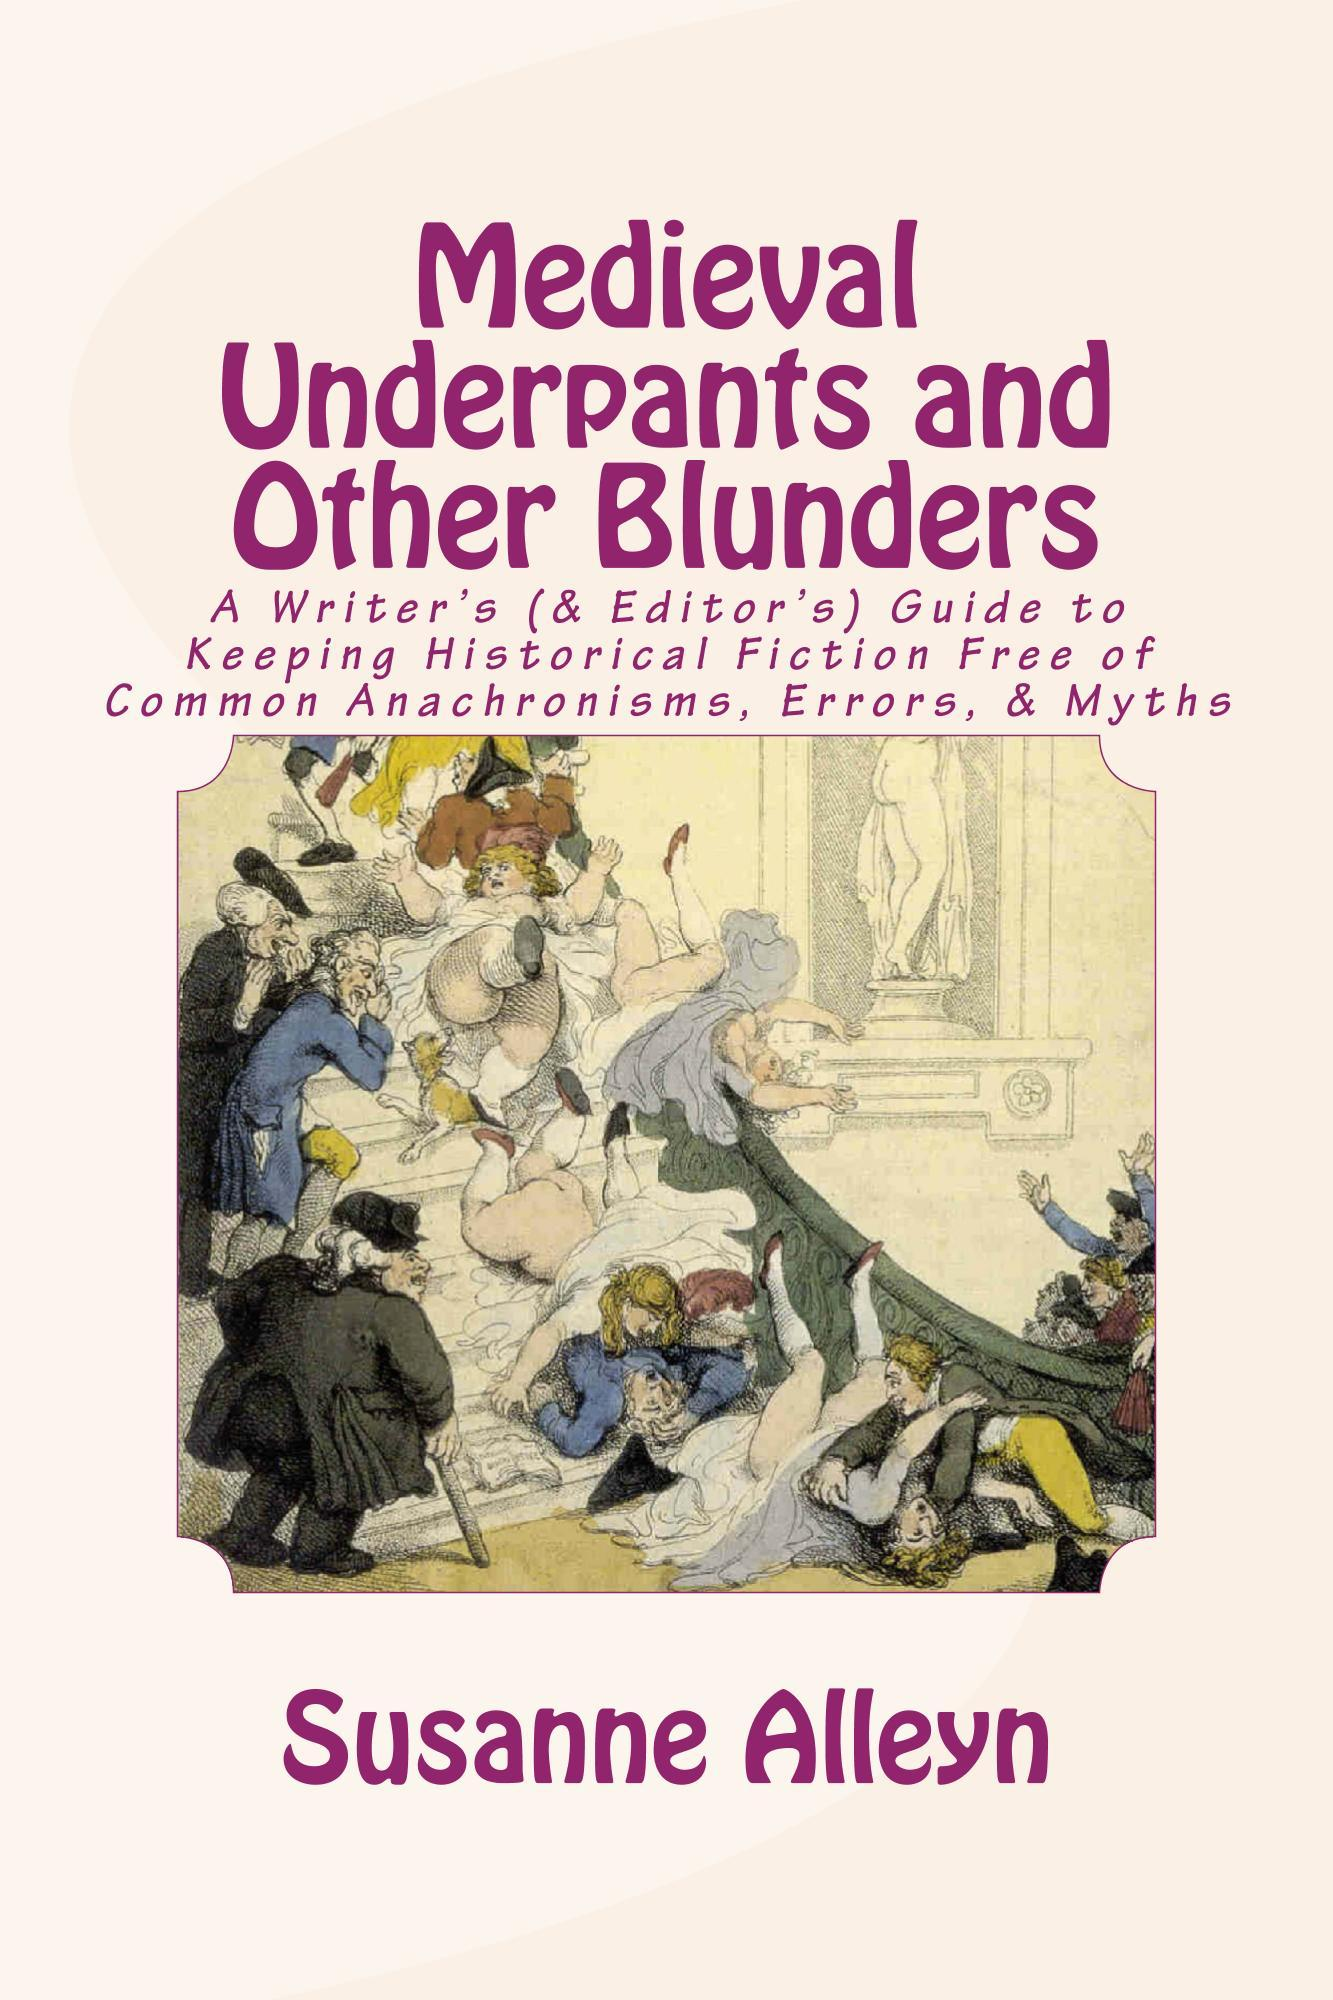 Medieval Underpants and Other Blunders: A Writer's (and Editor's) Guide to Keeping Historical Fiction Free of Common Anachronisms, Errors, and Myths